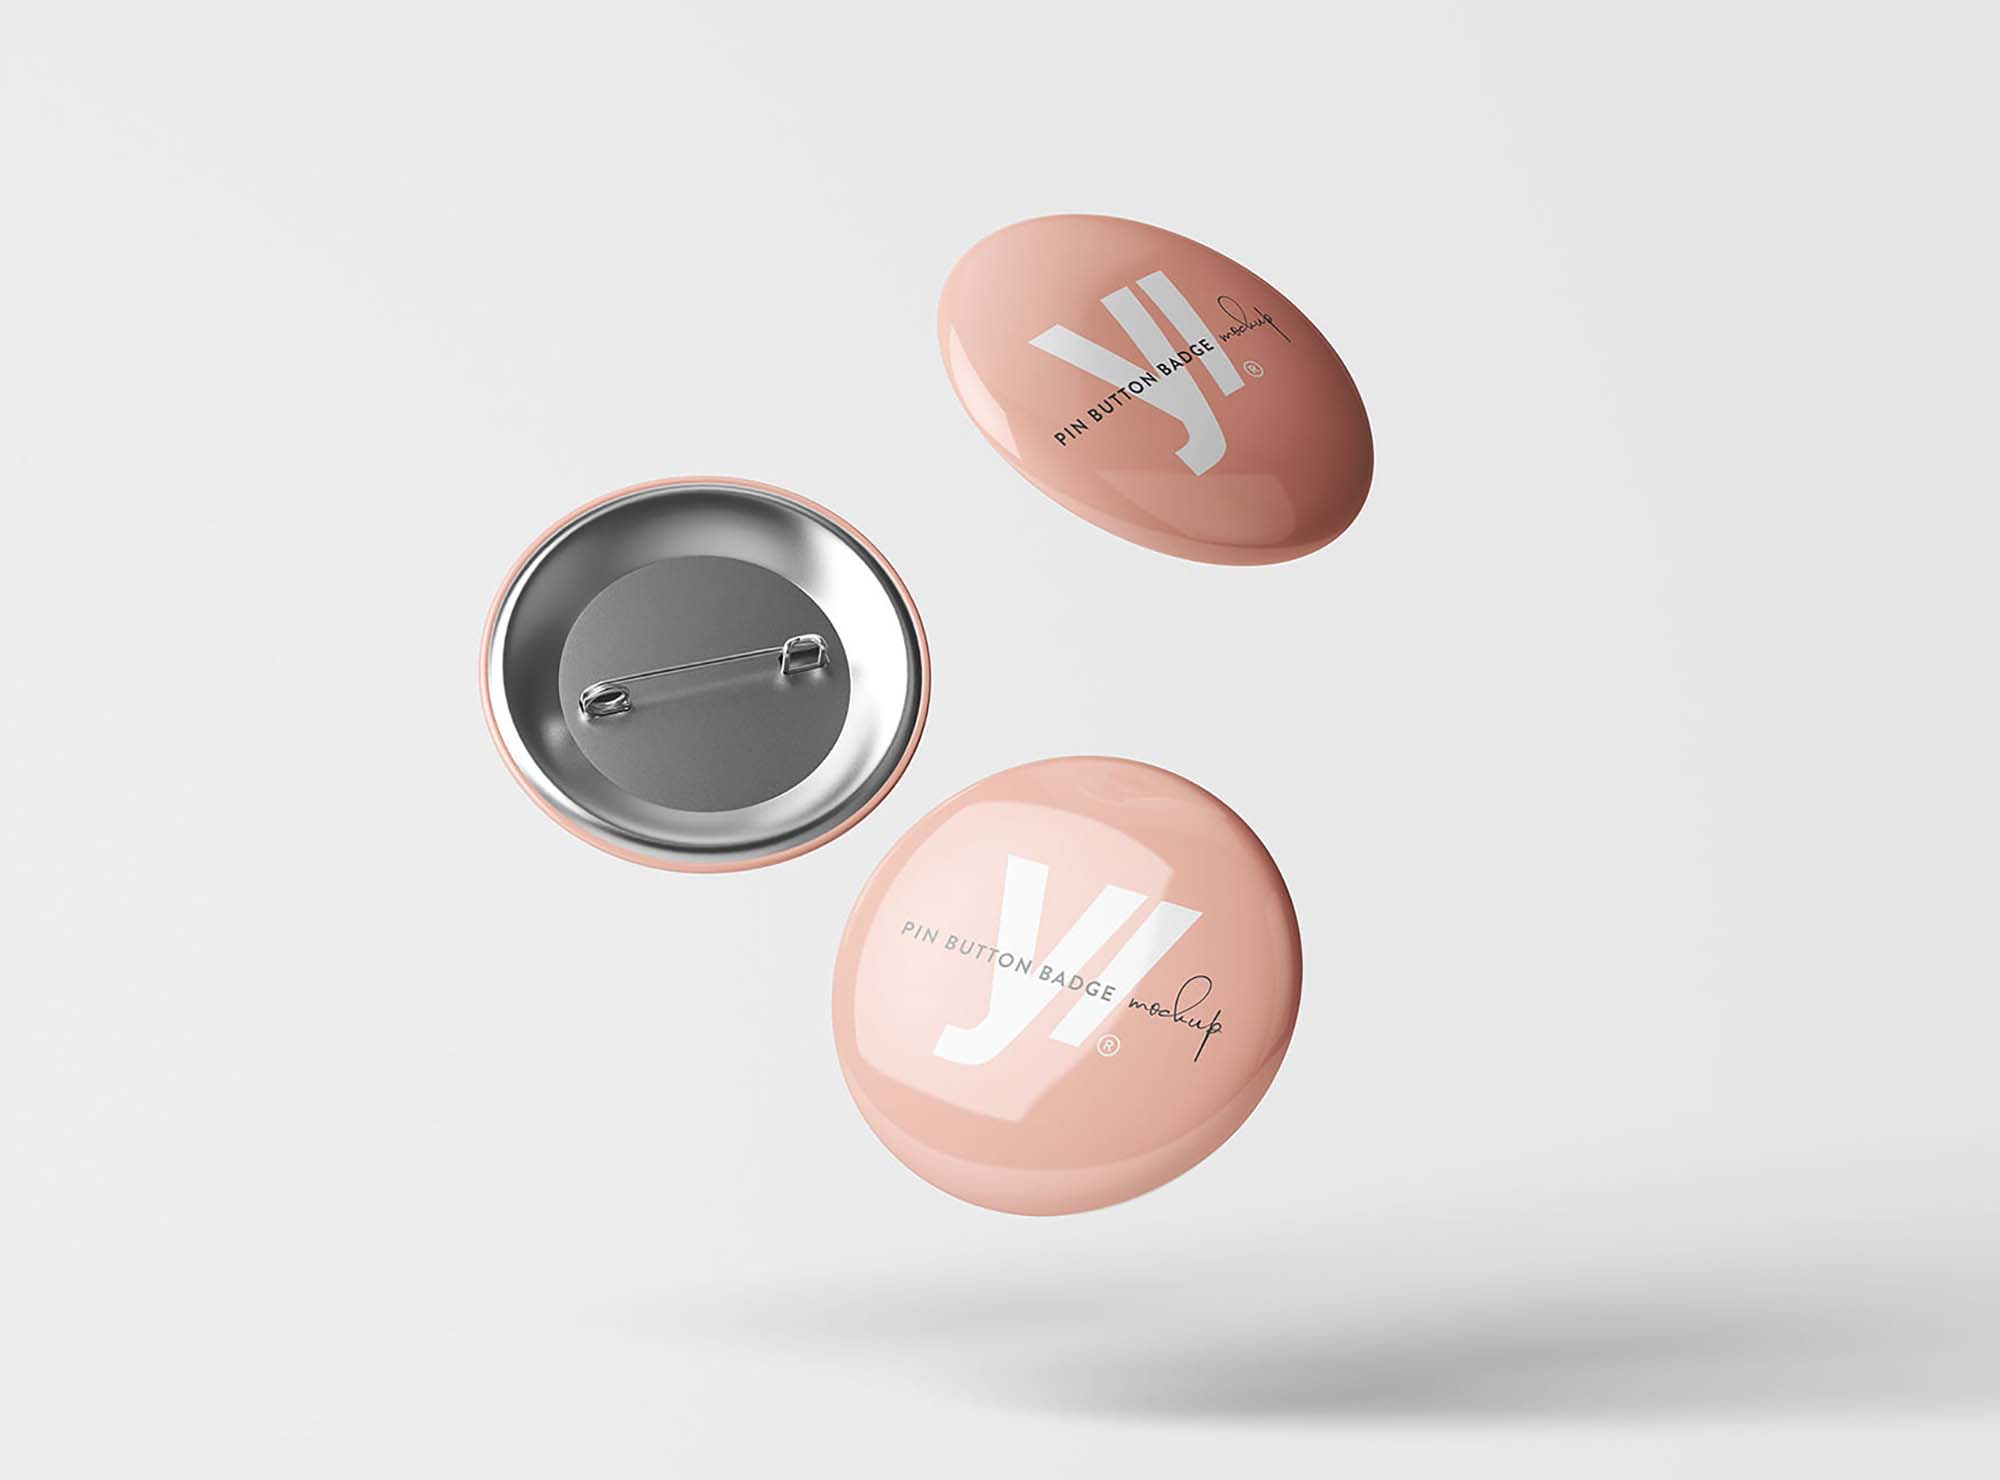 Floating Pin Button Badge Mockup